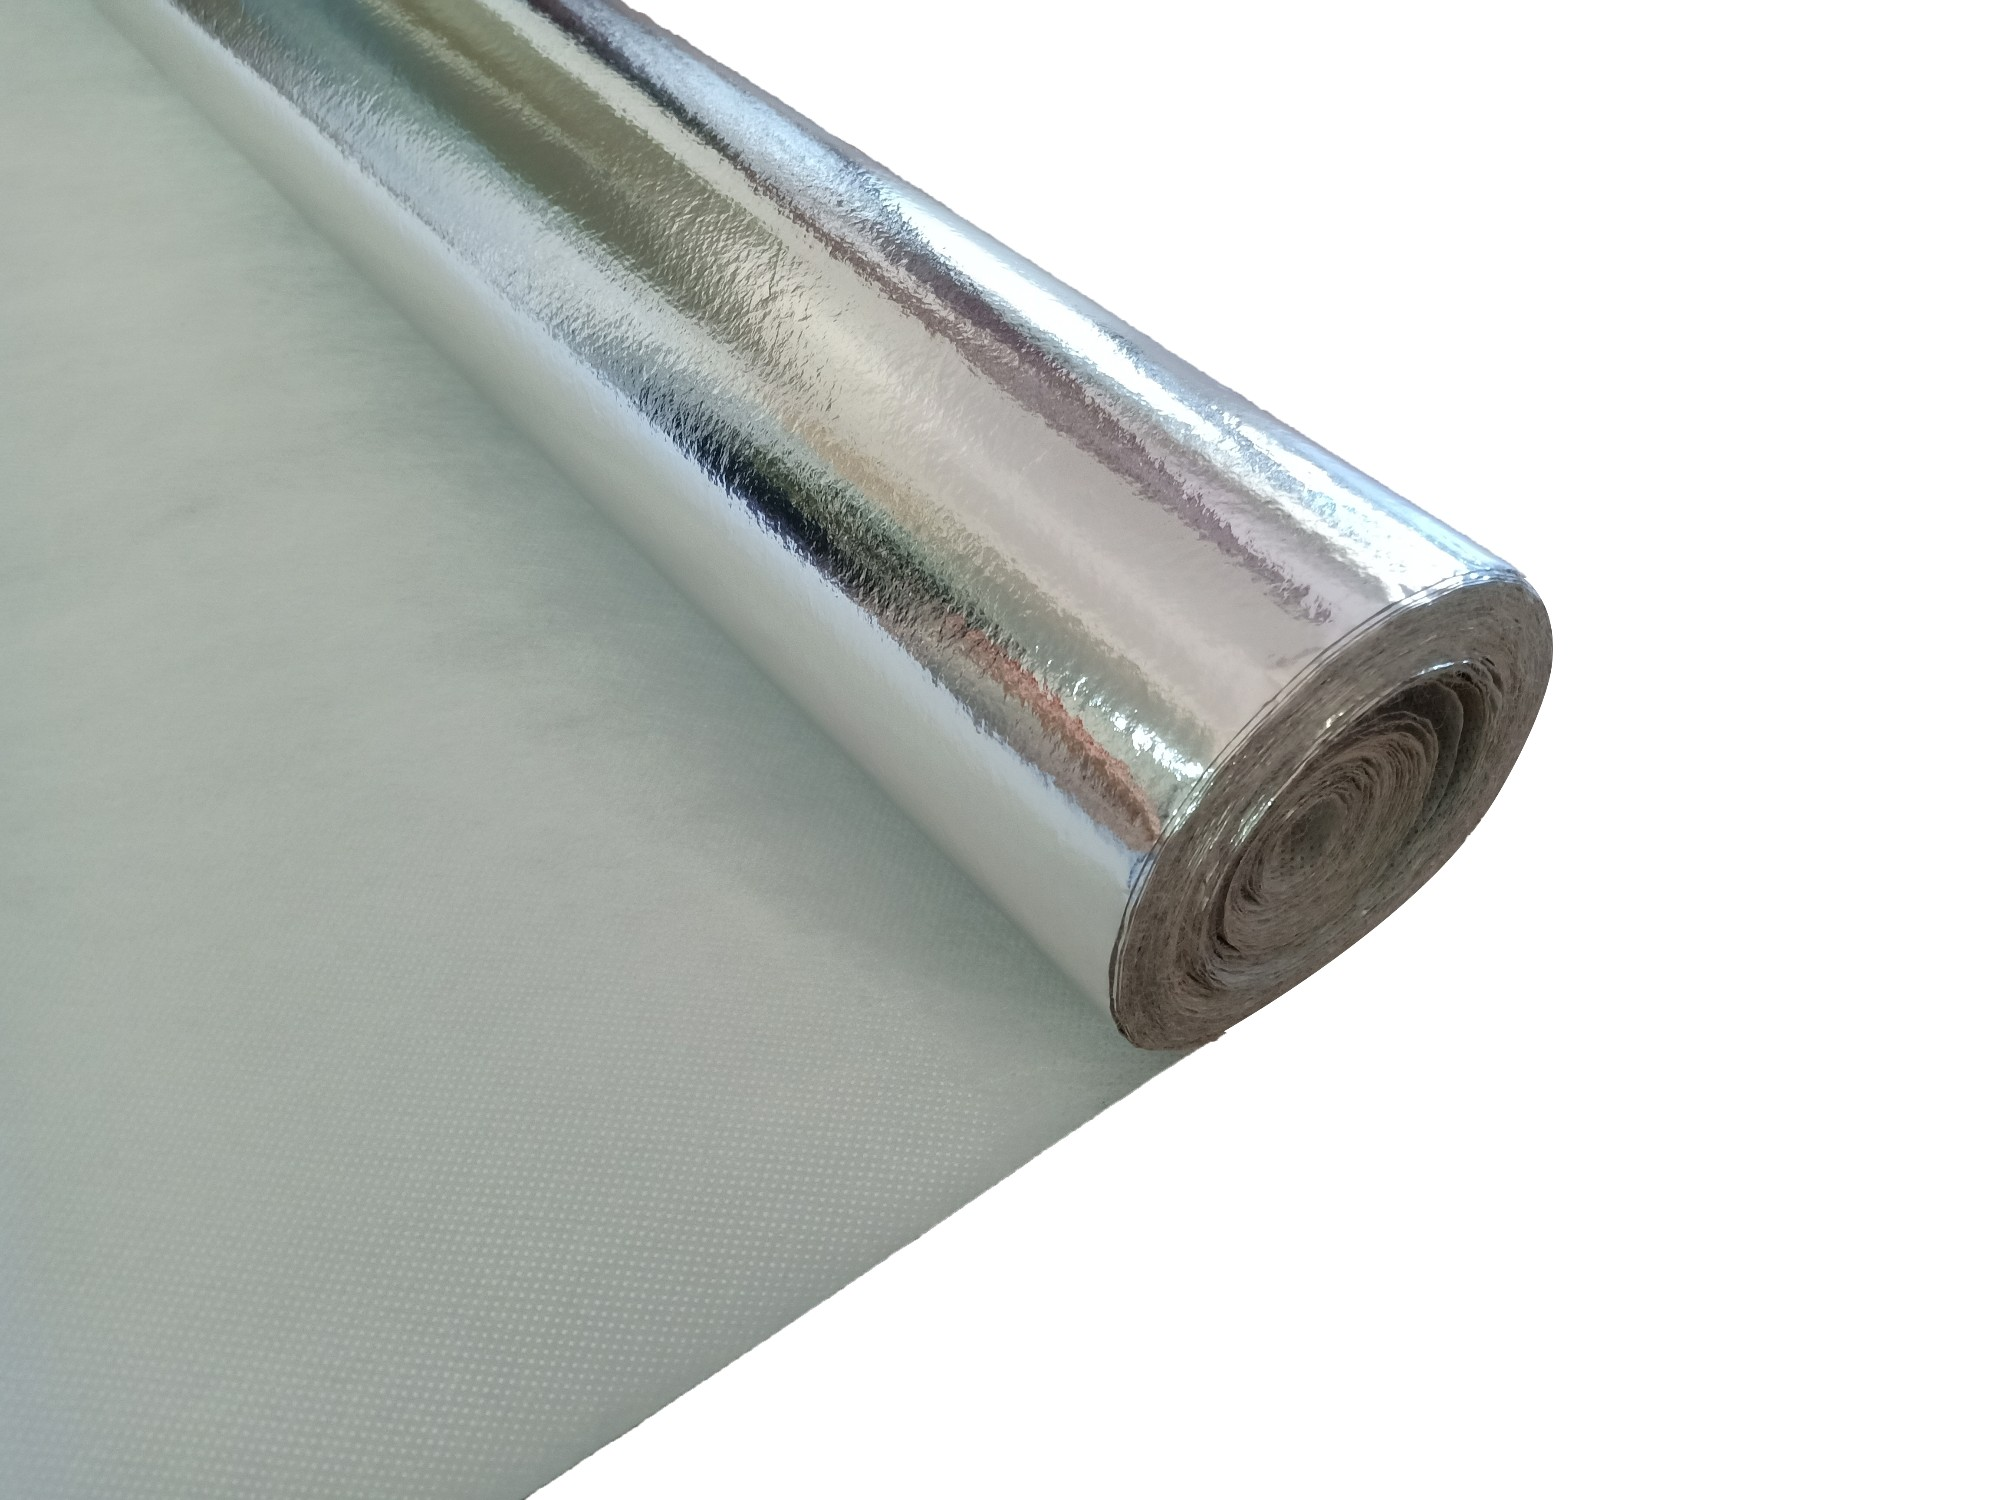 Reflective Vapor barrier Manufacturers, Reflective Vapor barrier Factory, Supply Reflective Vapor barrier